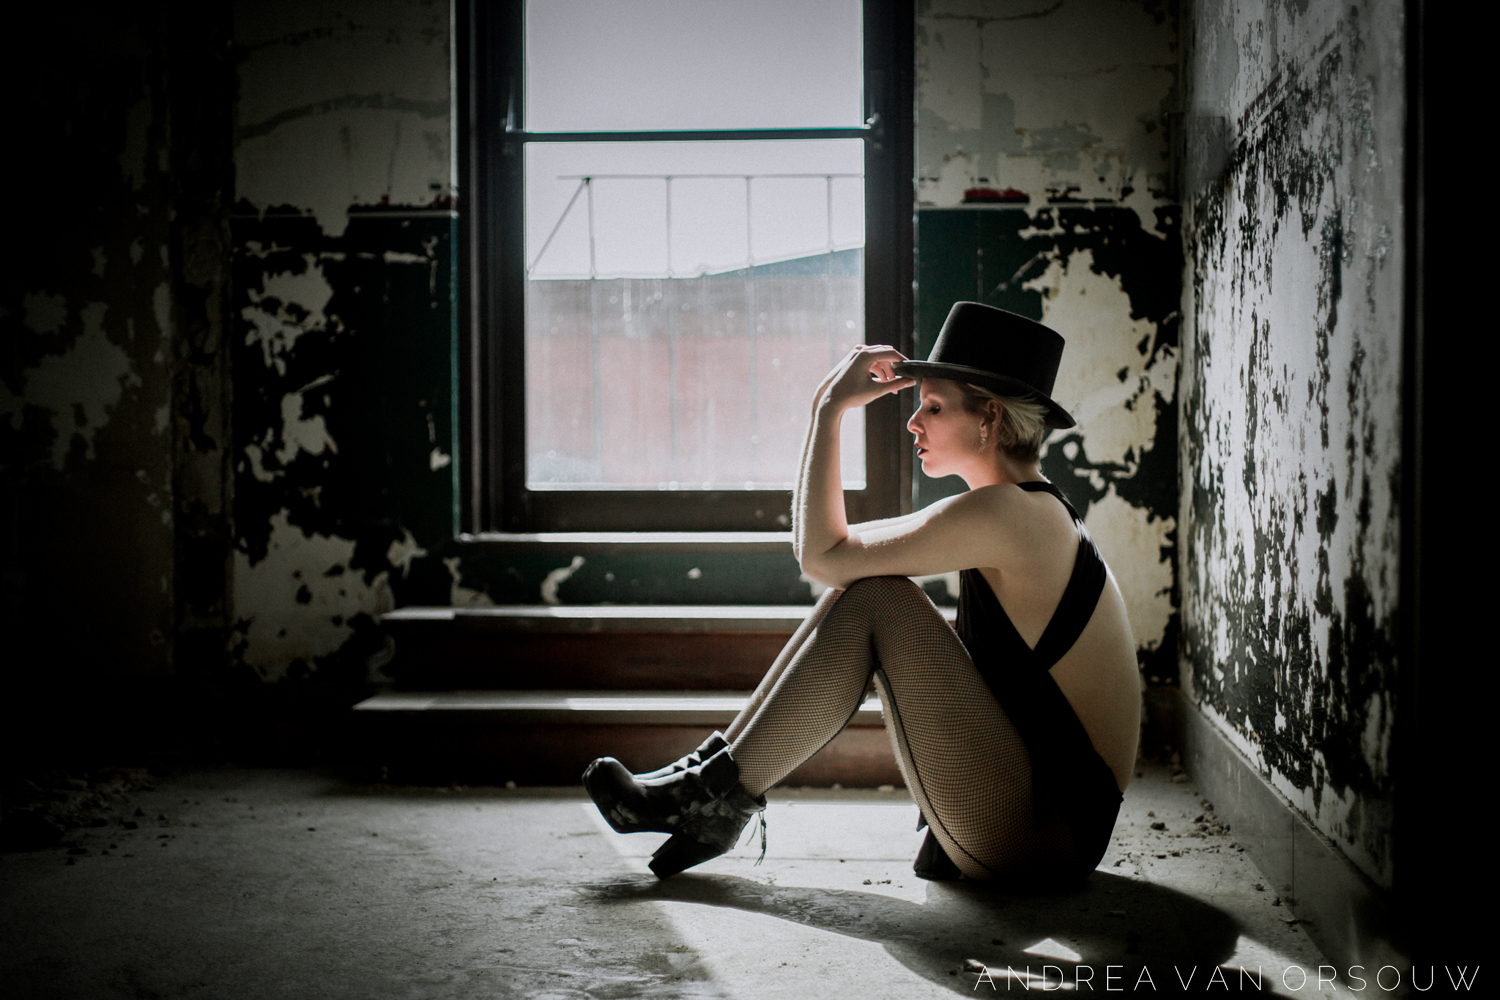 old_dilapidated_building_top_hat_red_lips_abandoned_boots_photographer_portrait_photography.jpg